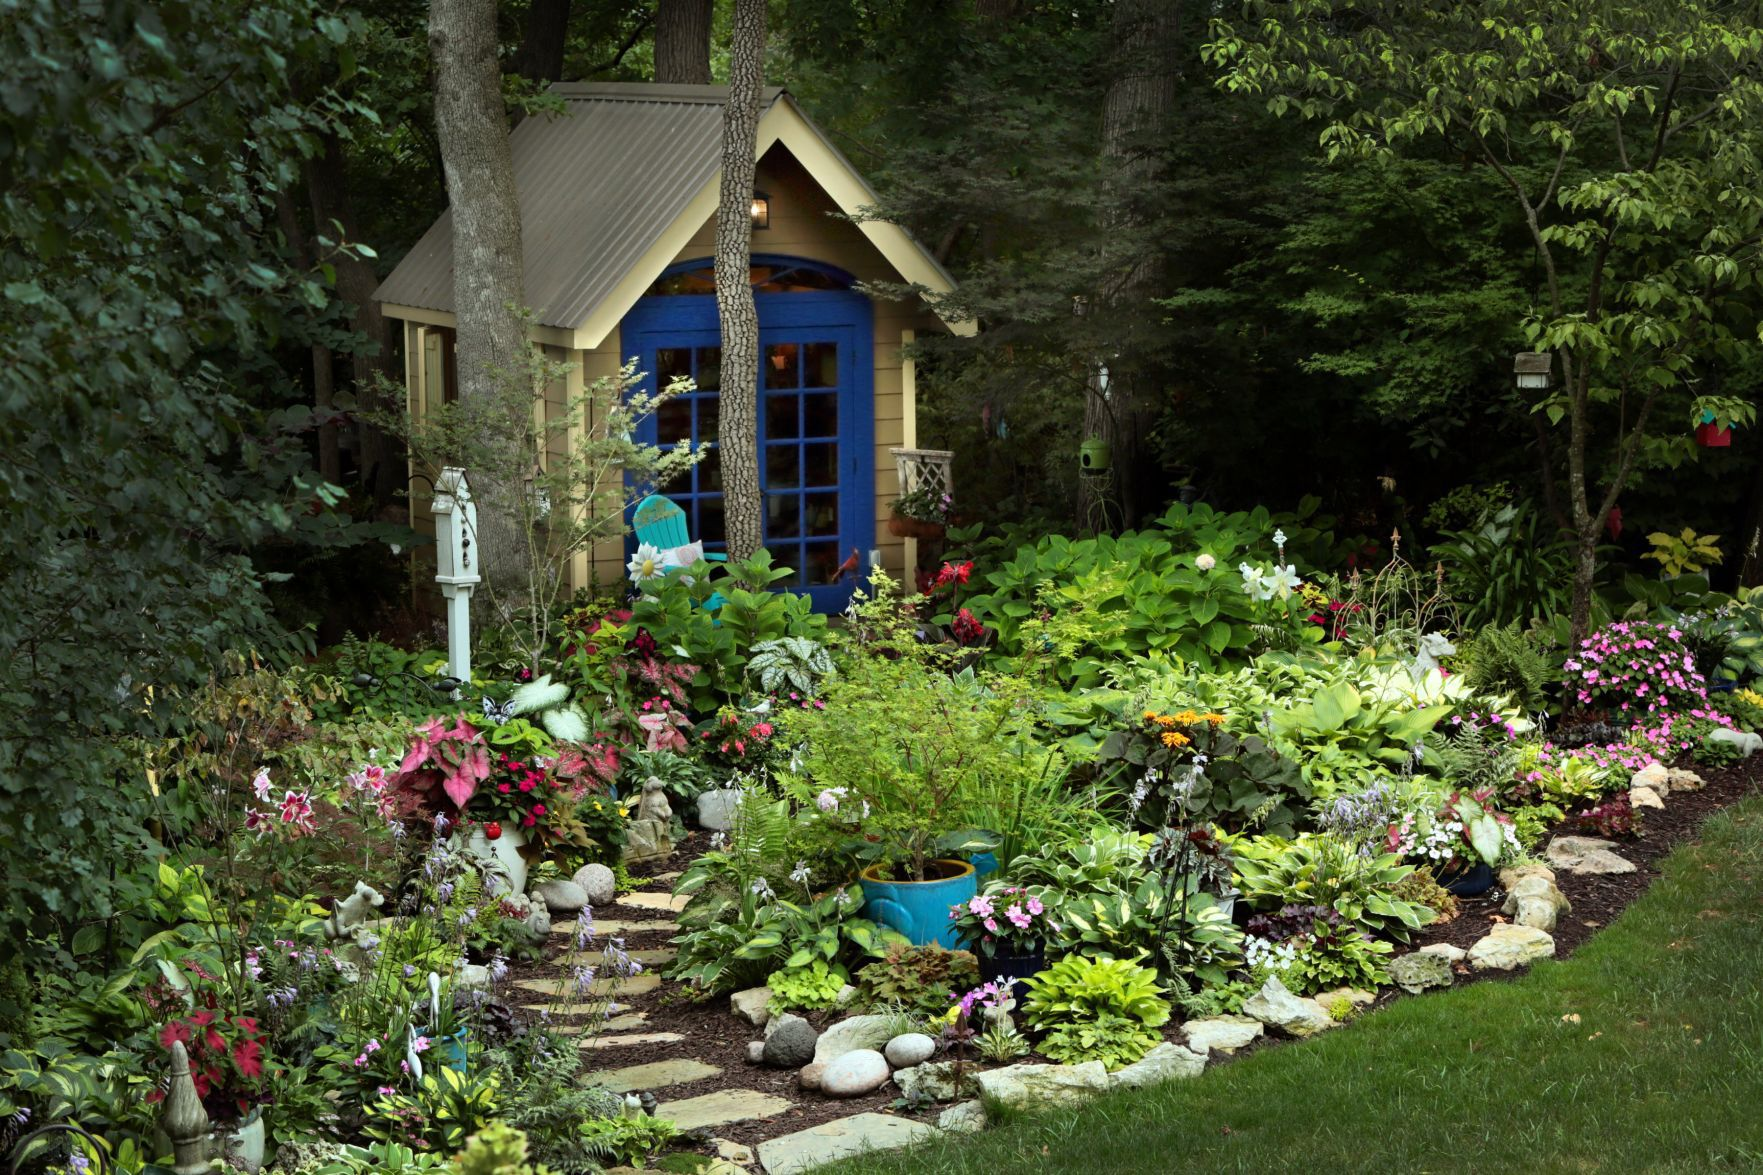 Best Home Garden By An Amateur: Marlene McBride Of Ballwin